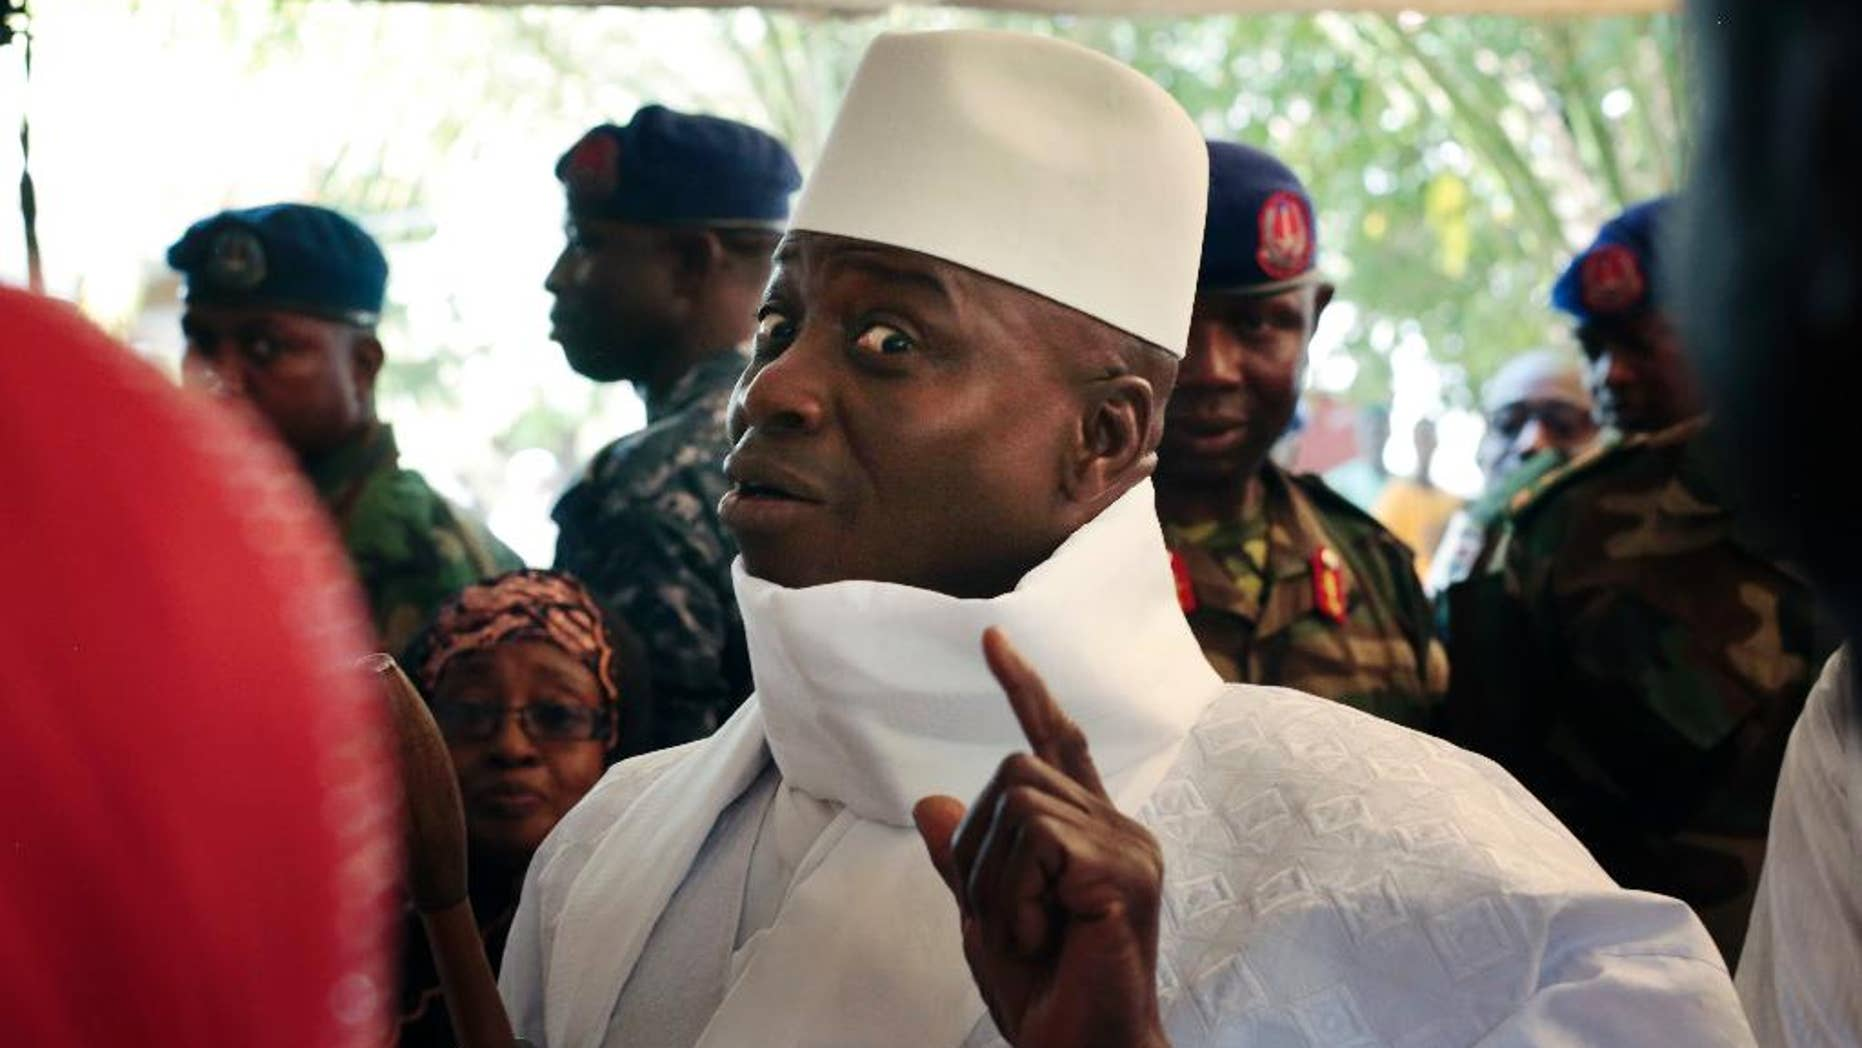 FILE- In this Thursday, Dec. 1, 2016 file photo, Gambia's president Yahya Jammeh shows his inked finger before voting in Banjul, Gambia. President Yahya Jammeh, who at first surprised Gambians by conceding defeat after 22 years in power, a week later announced that he had changed his mind. He alleges voting irregularities that make the Dec. 1 ballot invalid. (AP Photo/Jerome Delay, File)